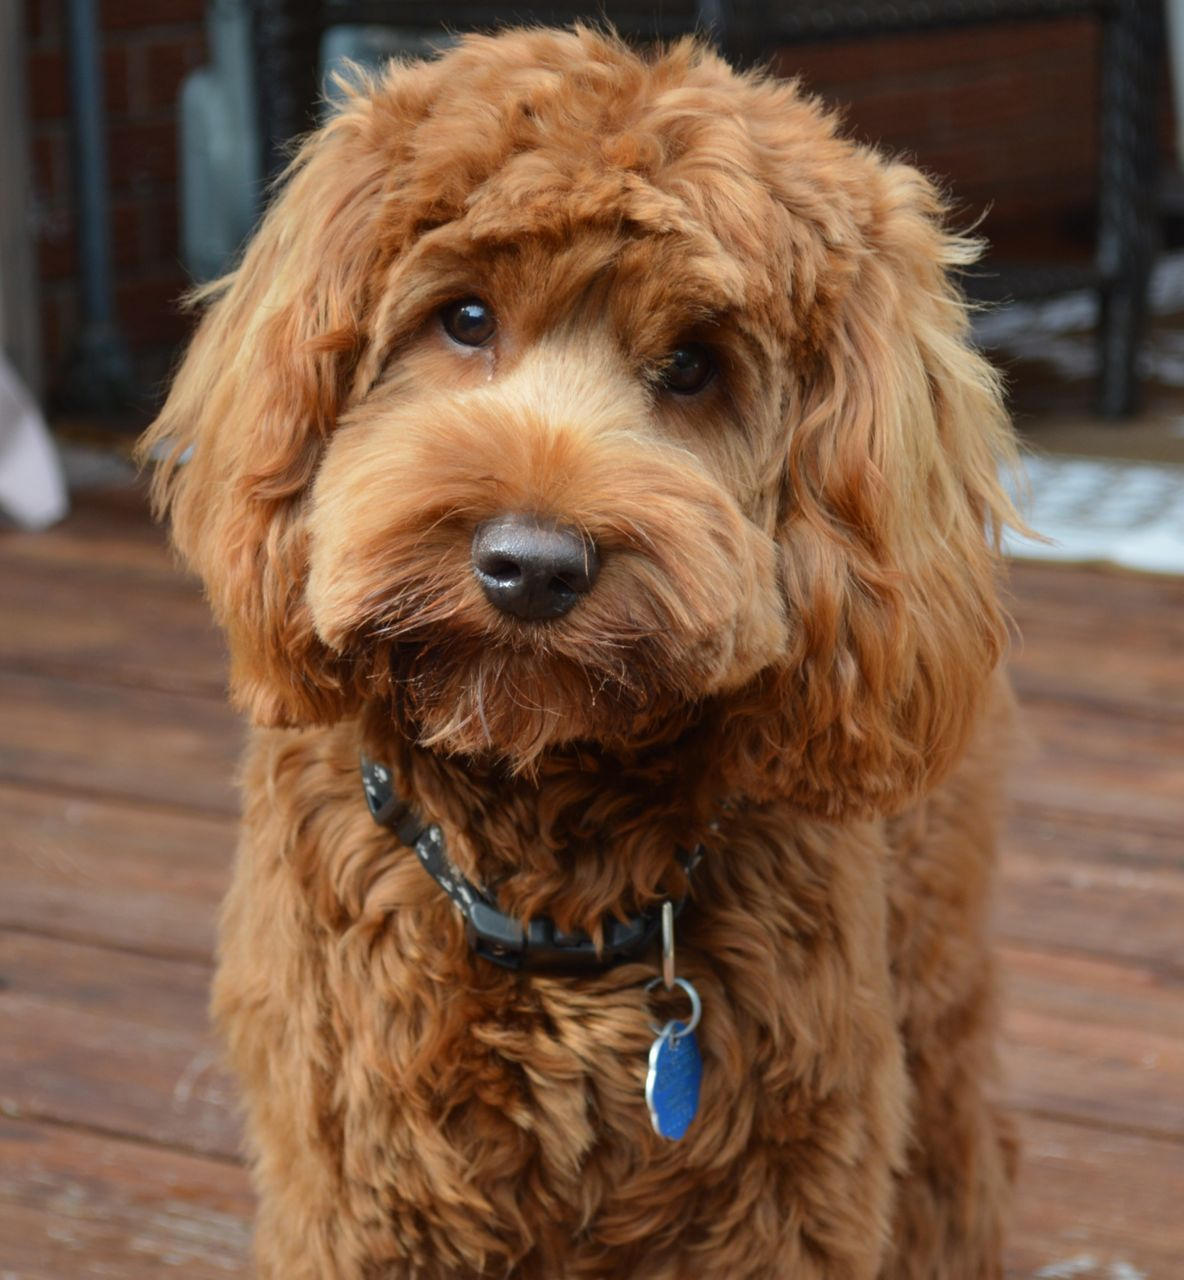 Australian Labradoodles At Halton Hills Labradoodle Haircut Labradoodle Puppy Goldendoodle Grooming